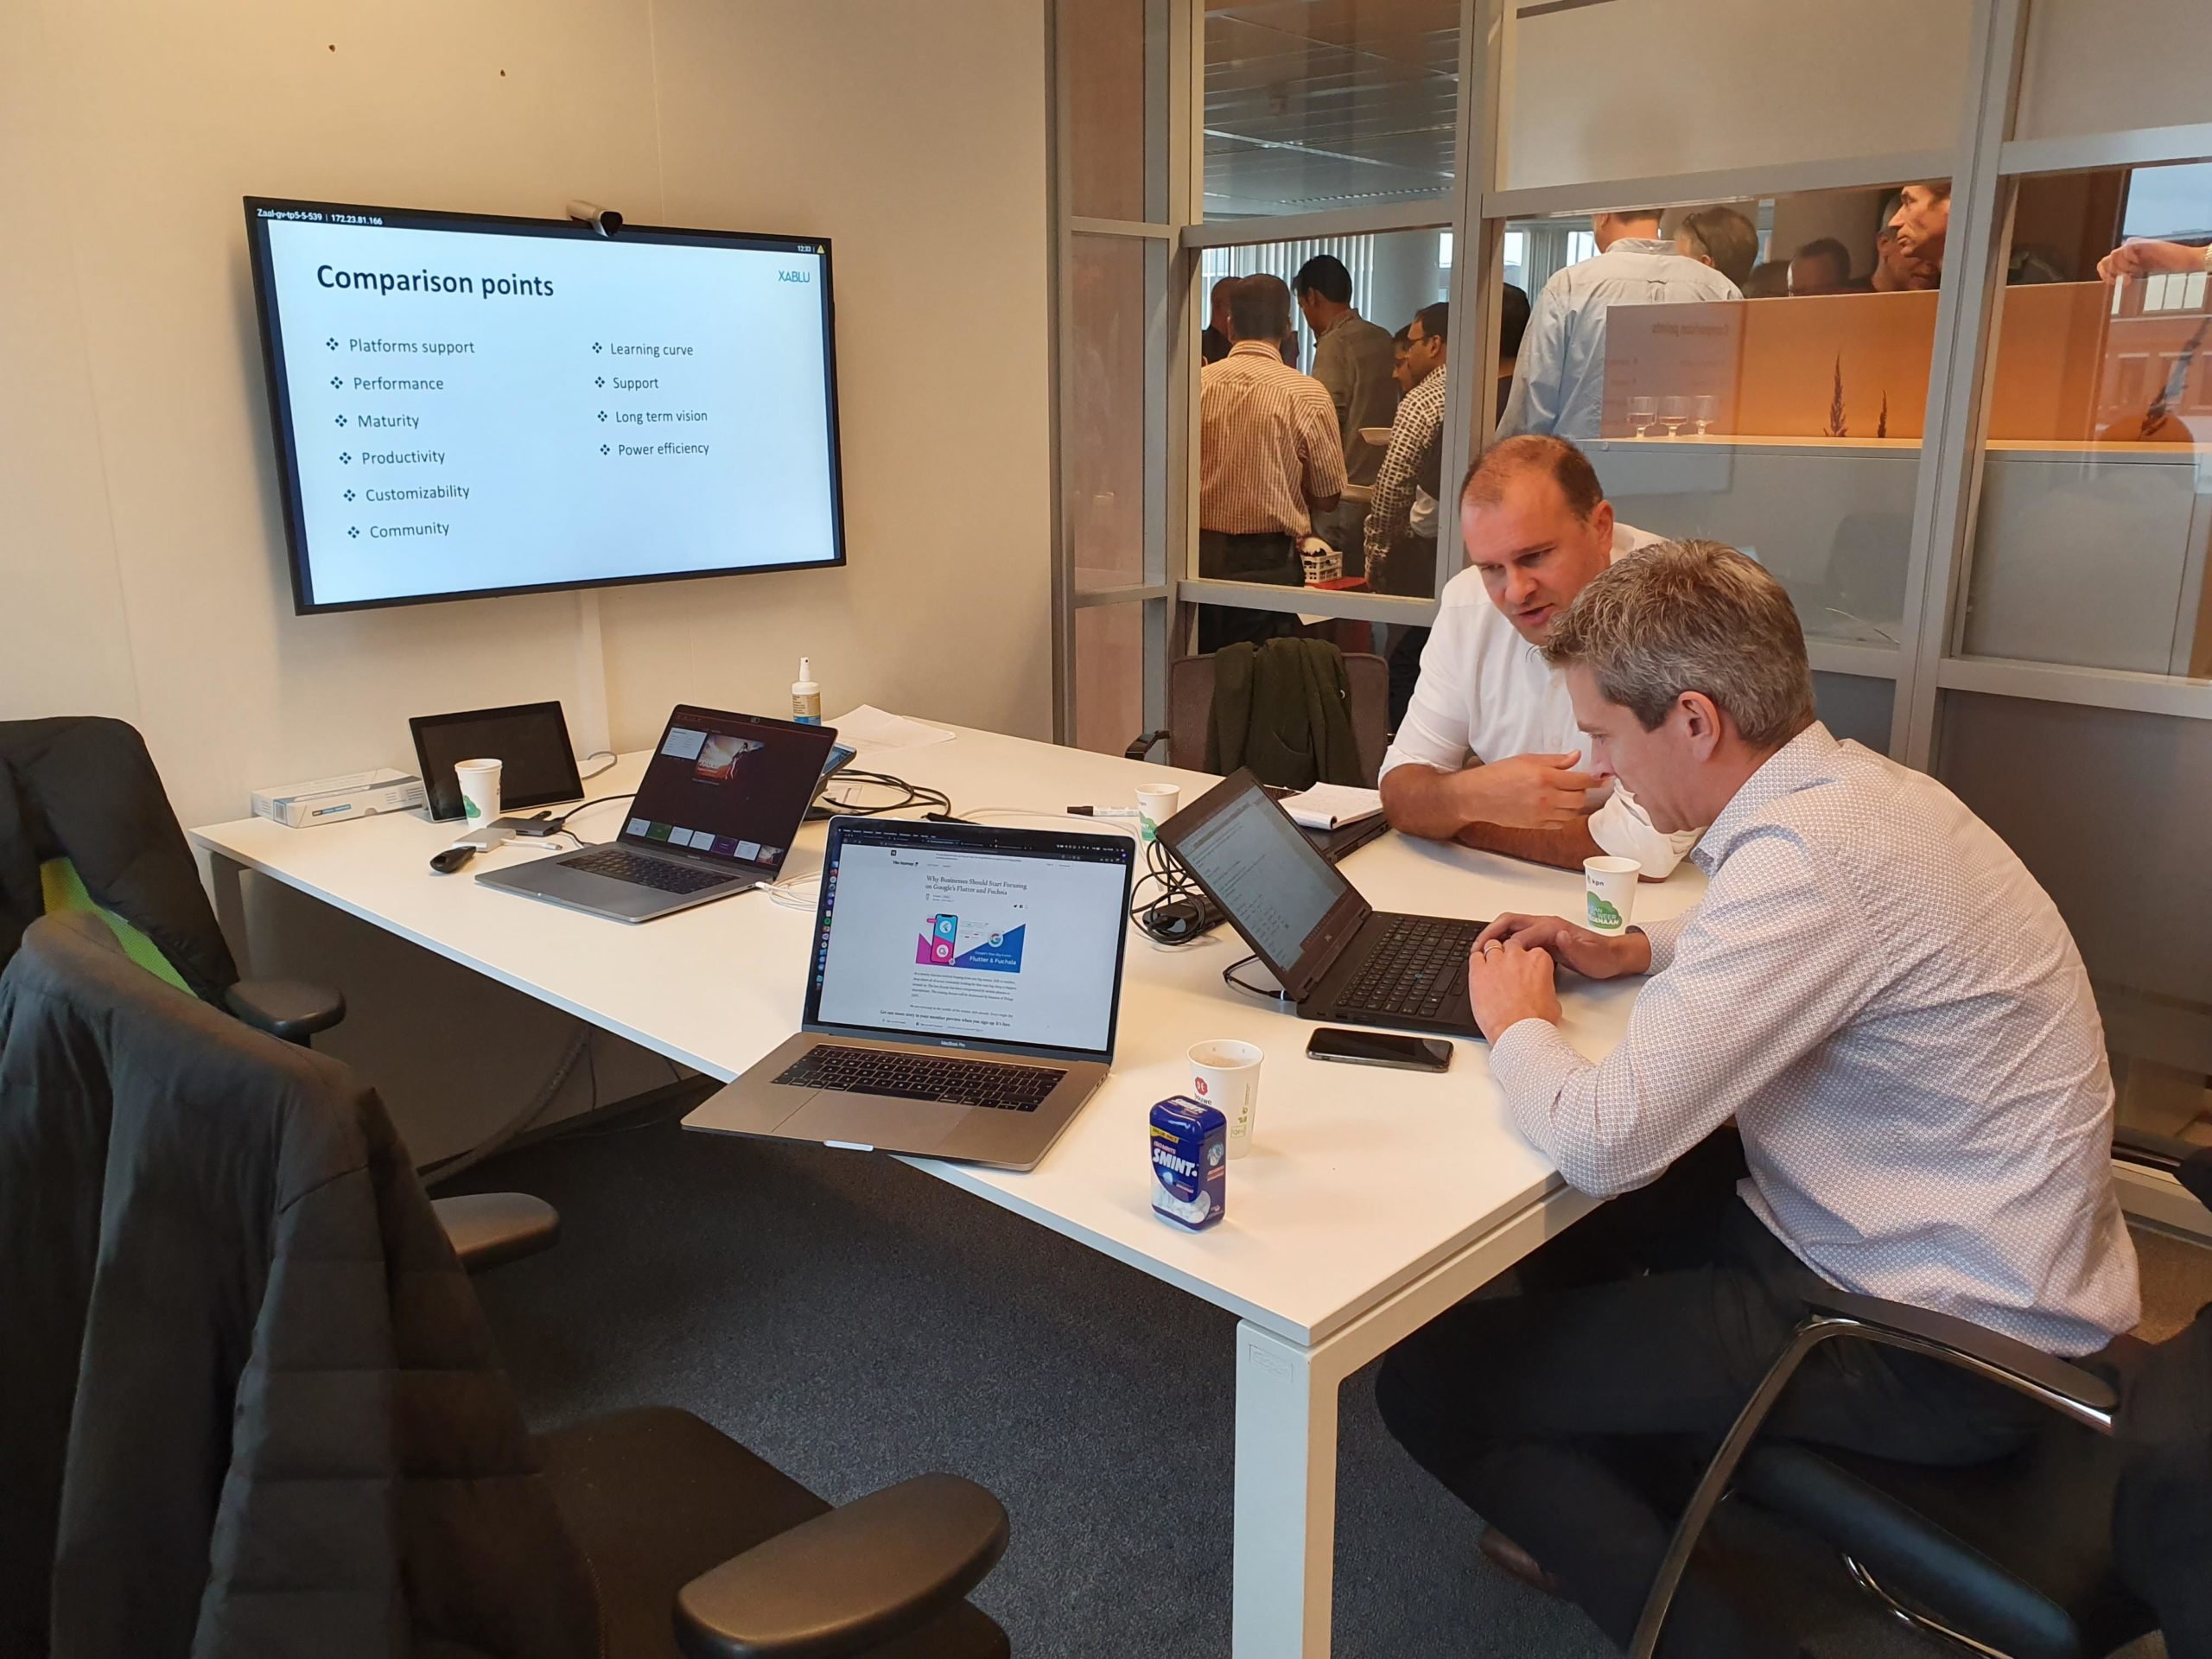 KPN looking at slides material for Mobiel Strategy Training